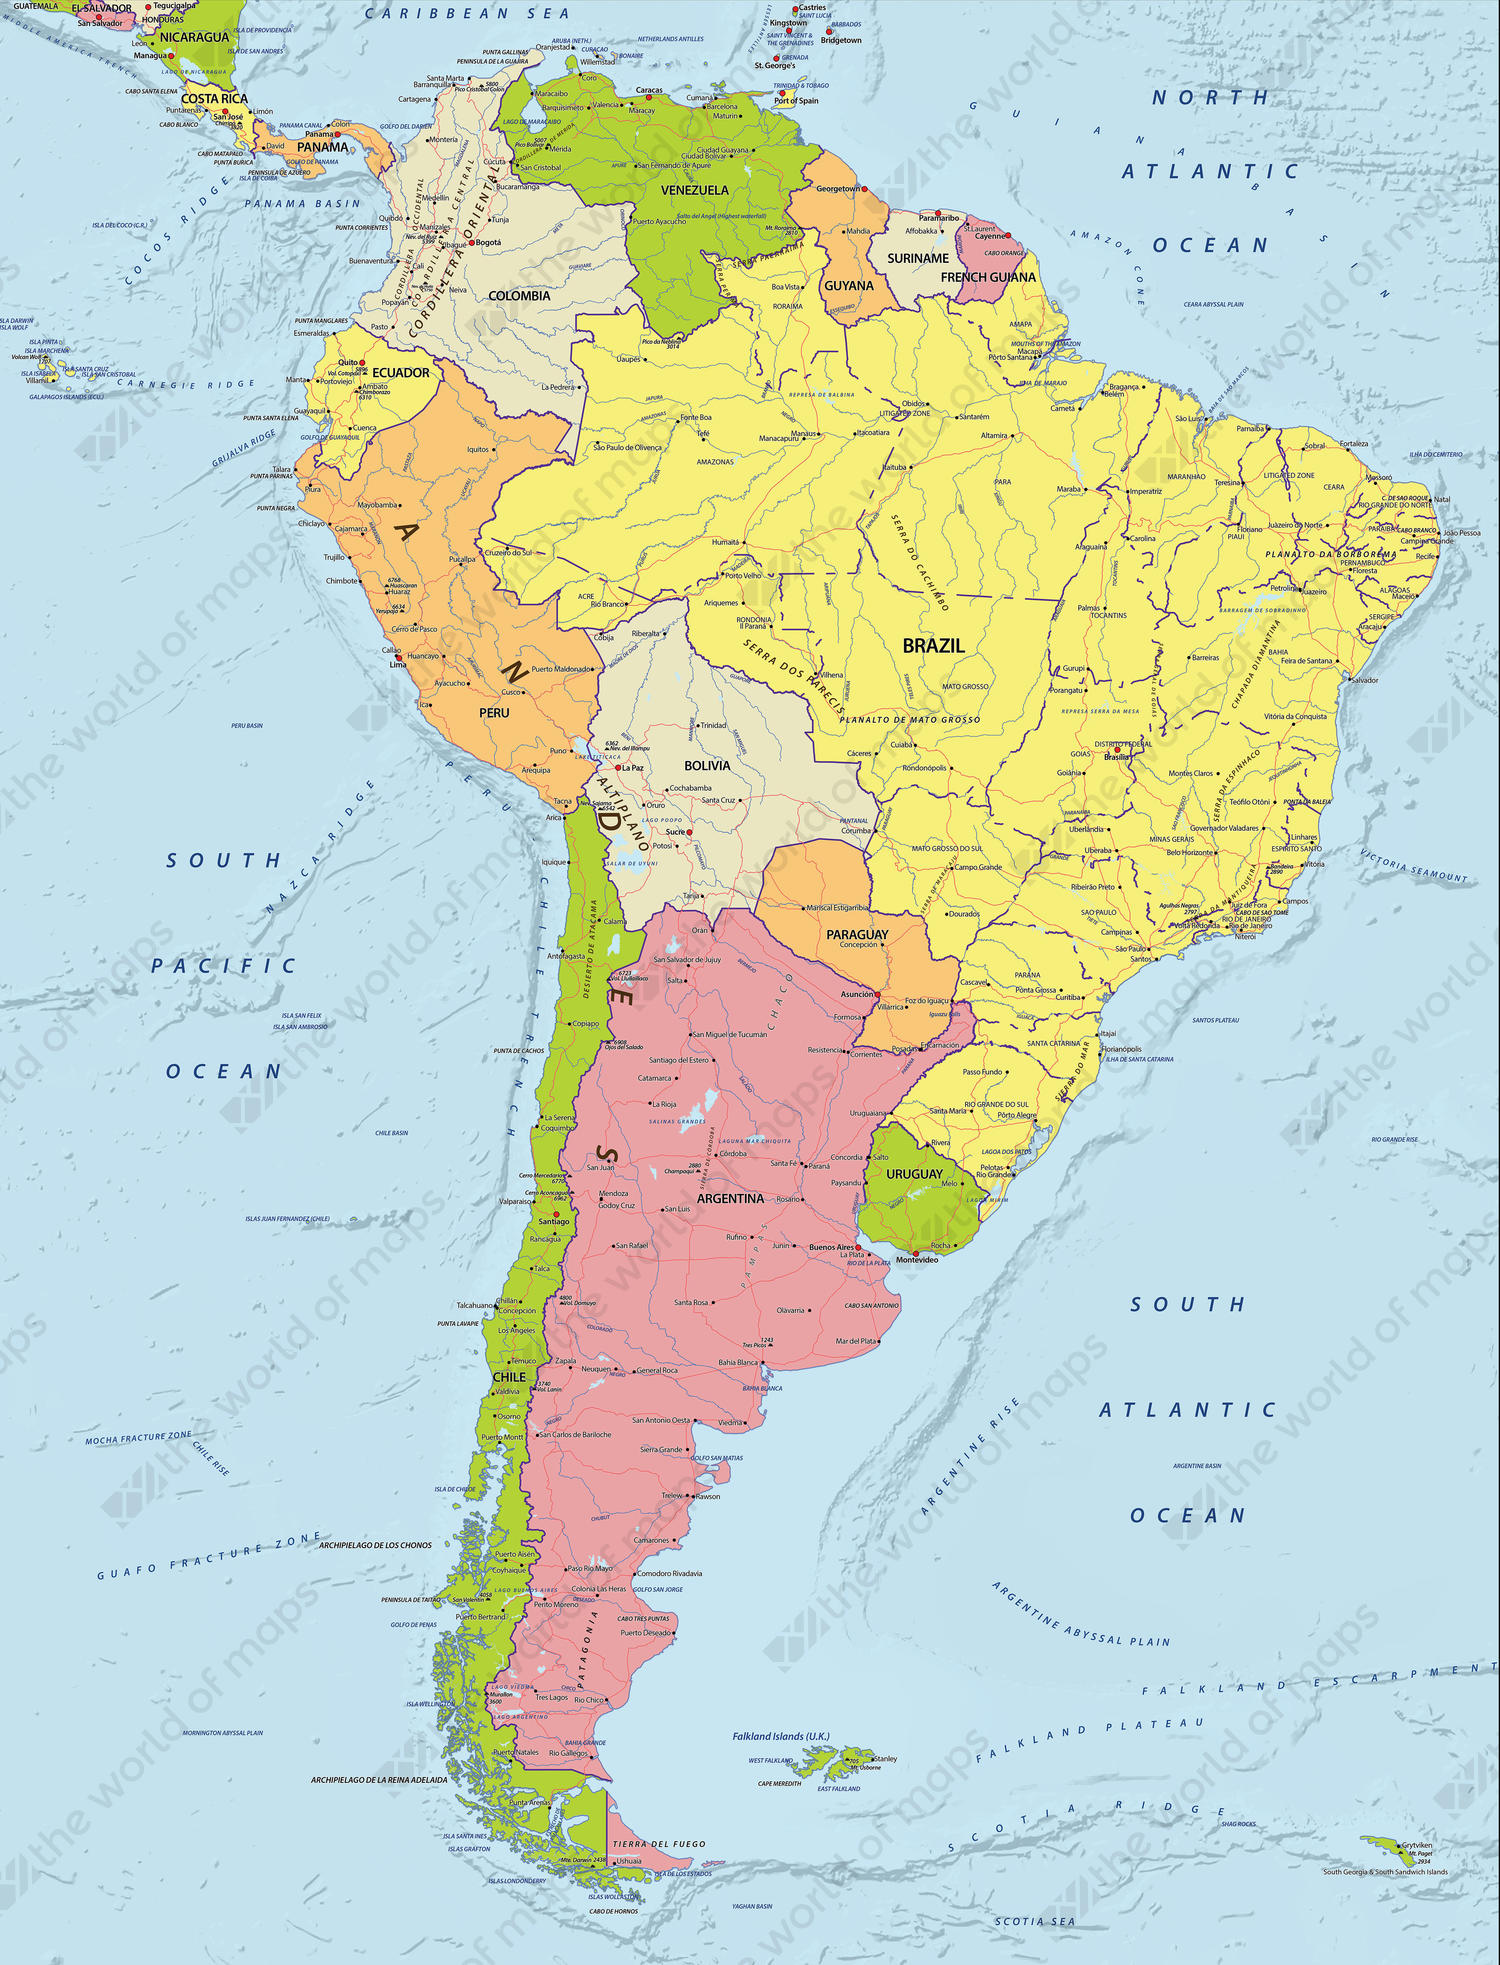 Politcal Digital Map South America 604 | The World of Maps.com